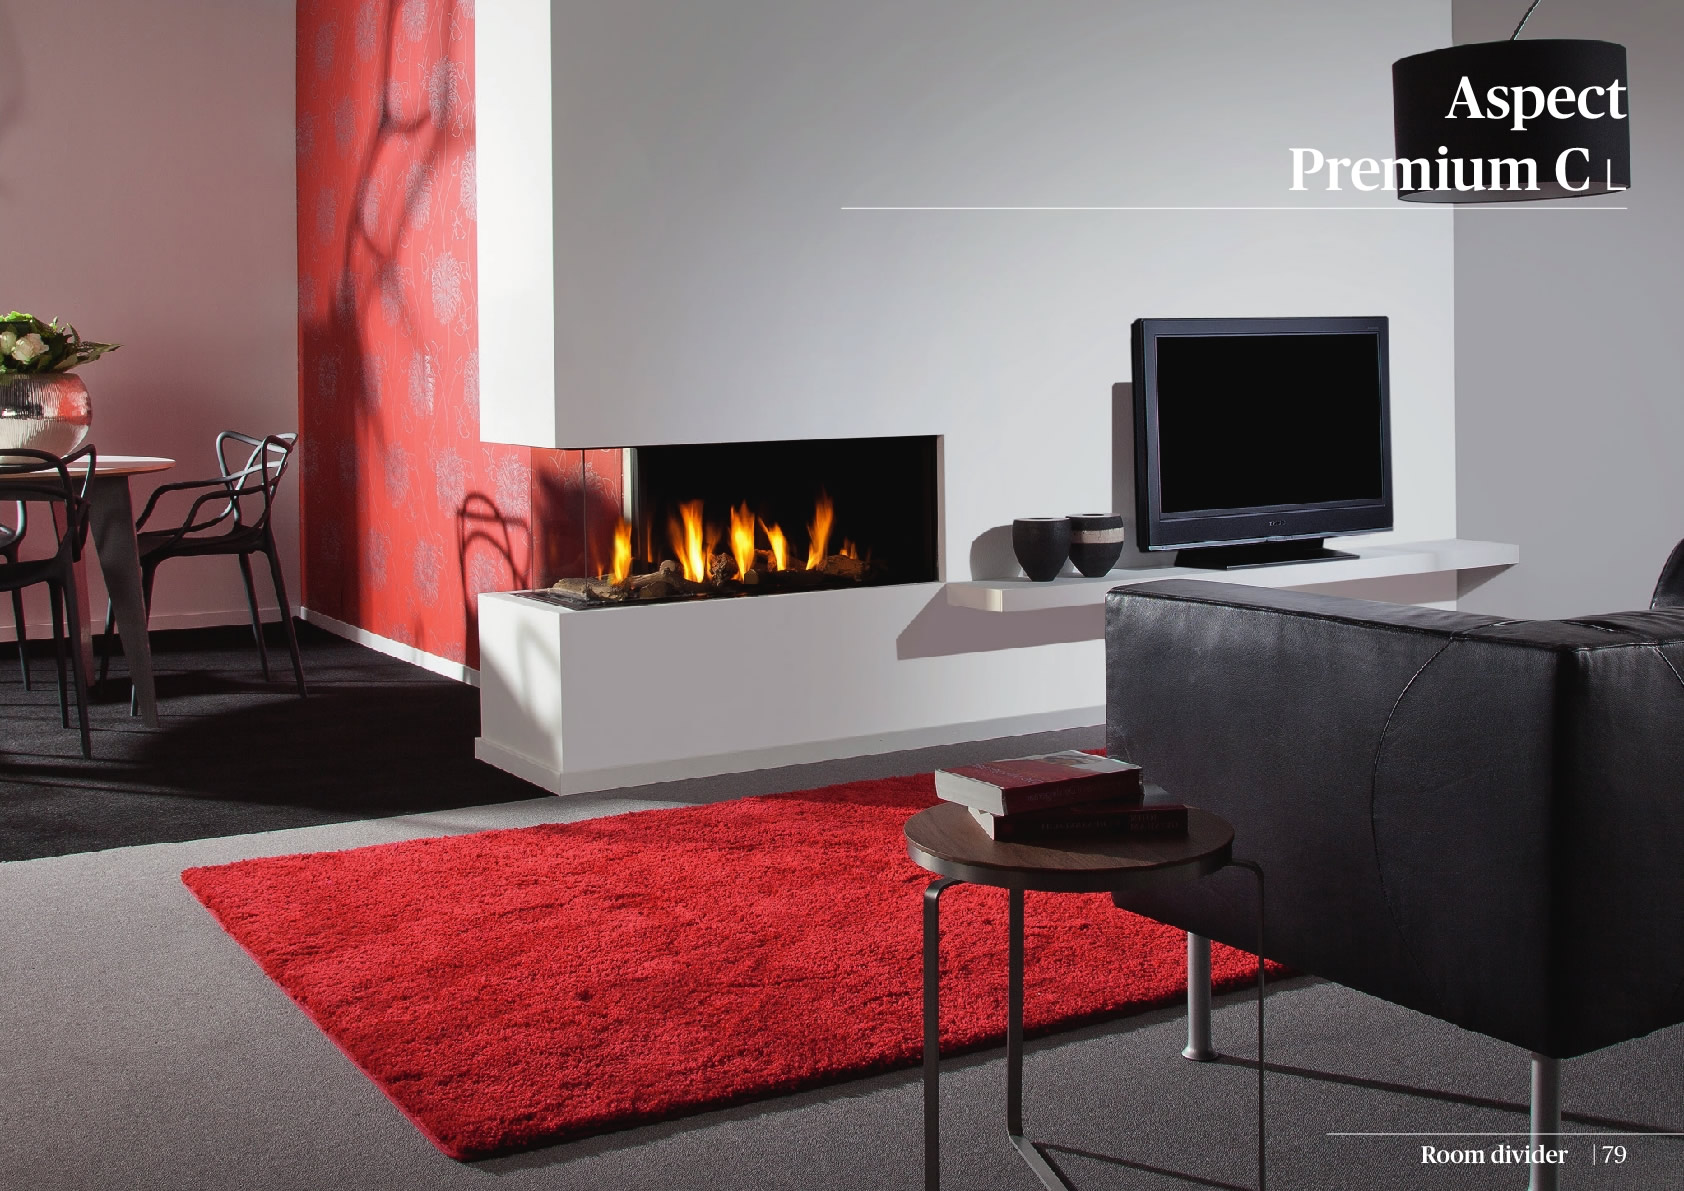 Faber Natural Gas Fireplaces - Aspect Premium CL